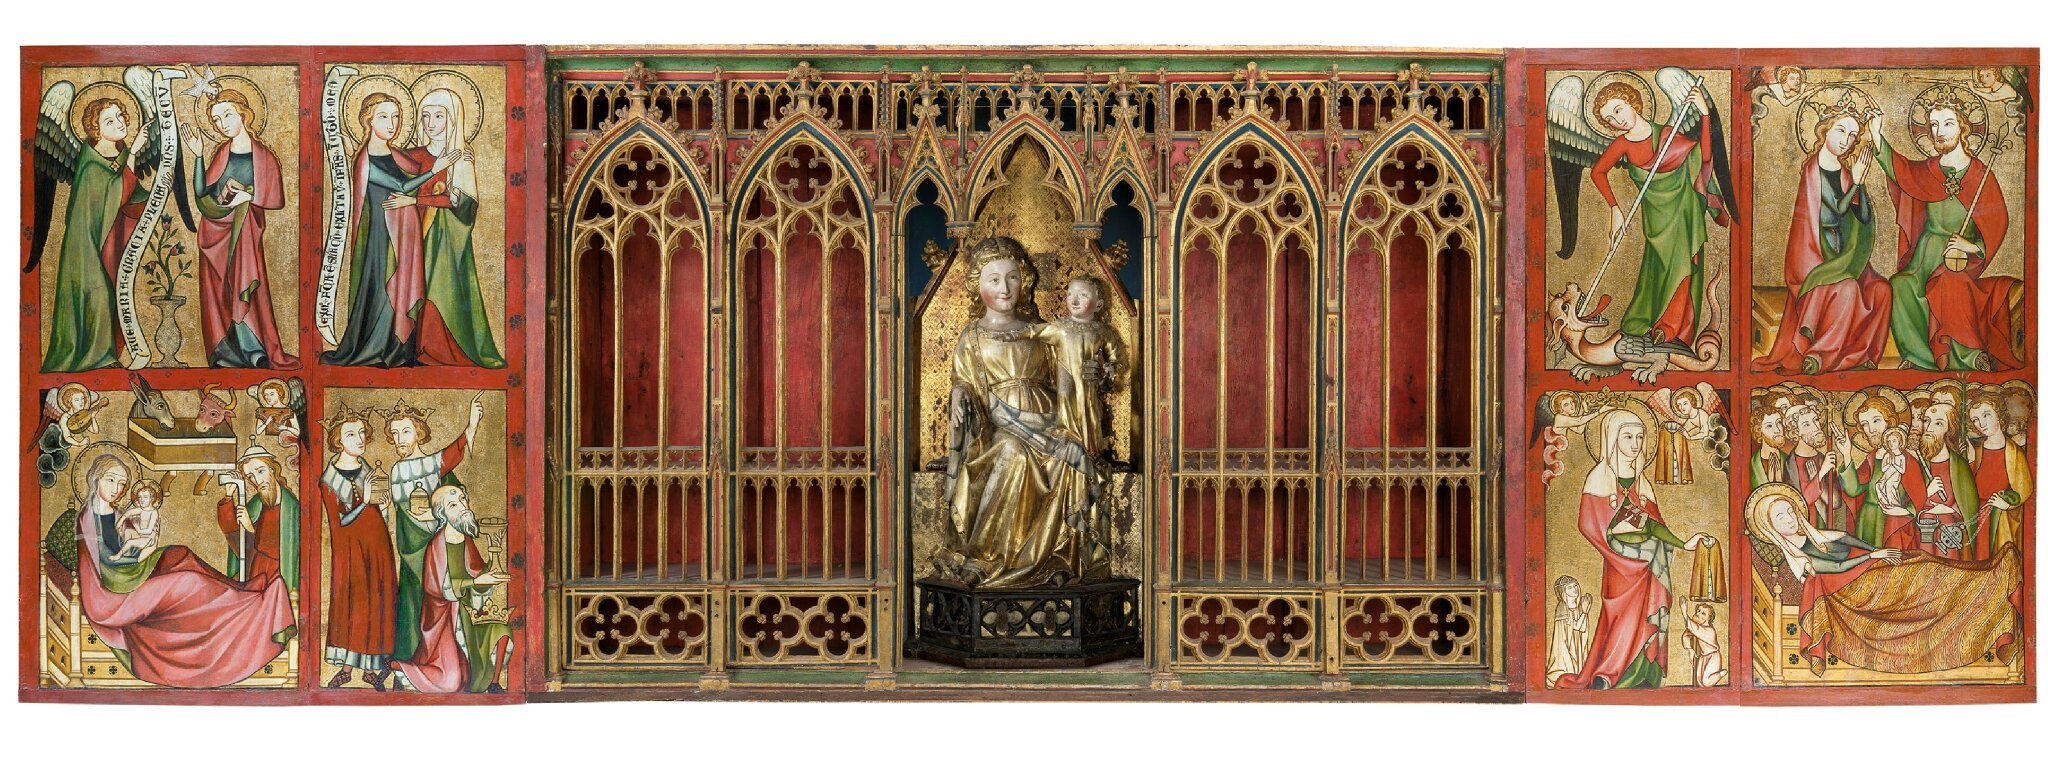 Heaven on display: The Altenberg Altar and its imagery on view in Frankfurt